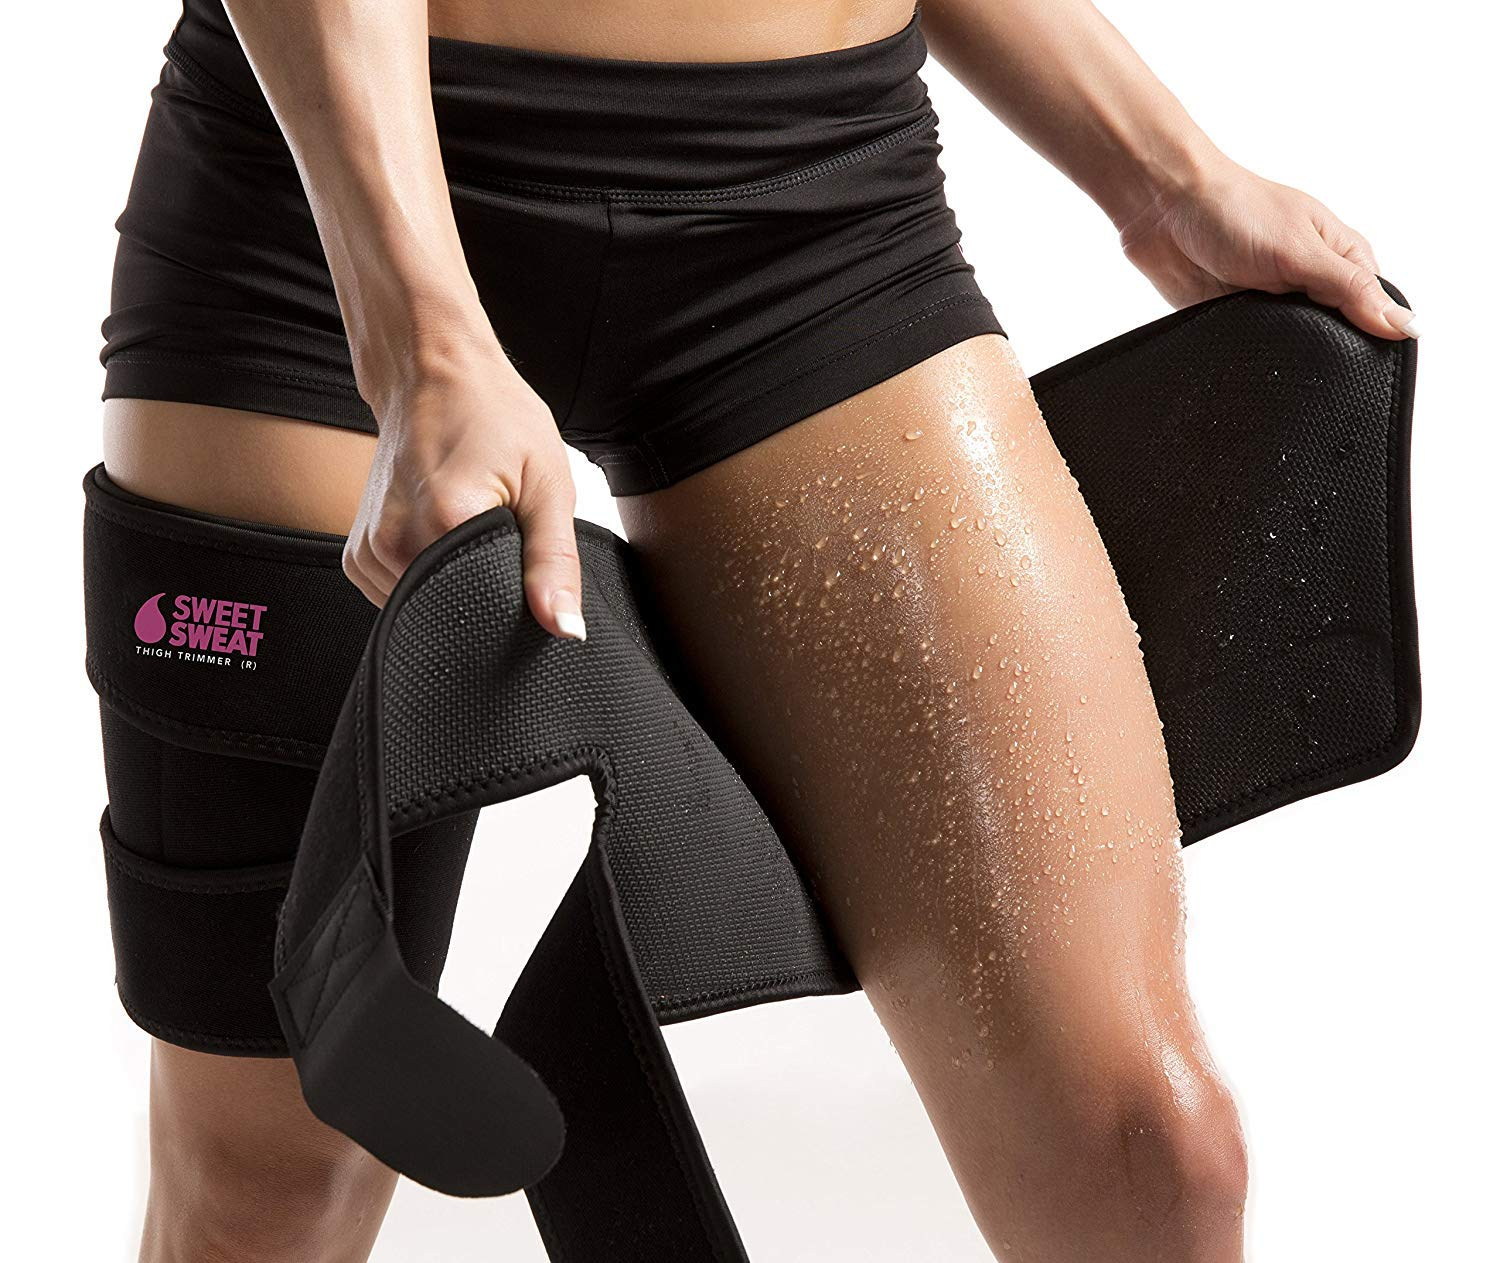 Sports Research Sweet Sweat Thigh Trimmers for Men & Women ~ Increases Heat and Sweat Production to The Thigh Area ~ Includes Mesh Carrying Bag (Pink, Large: 31'' L x 9'' W) by Sports Research